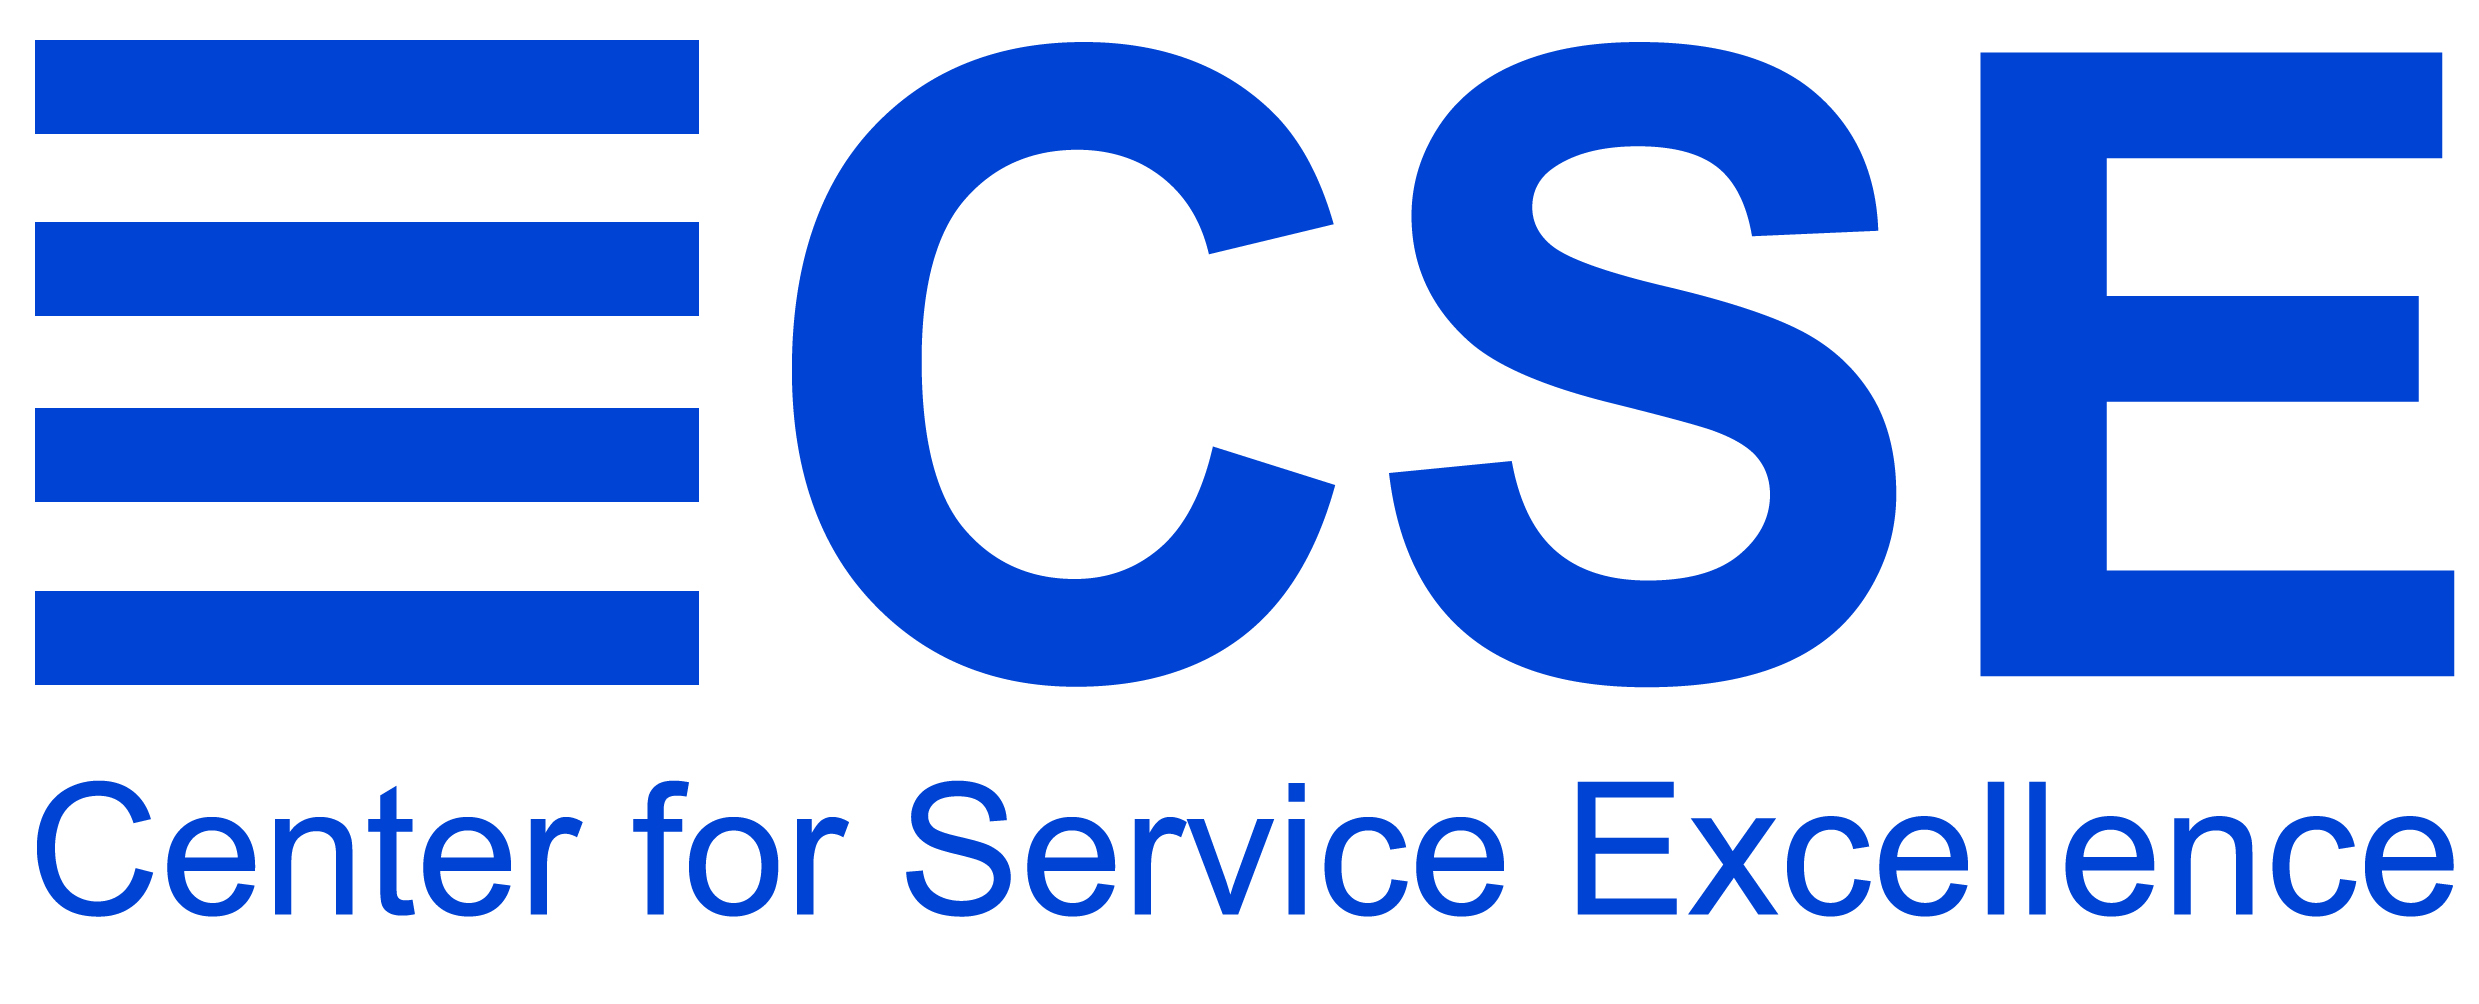 CSE. Center for Service Excellence